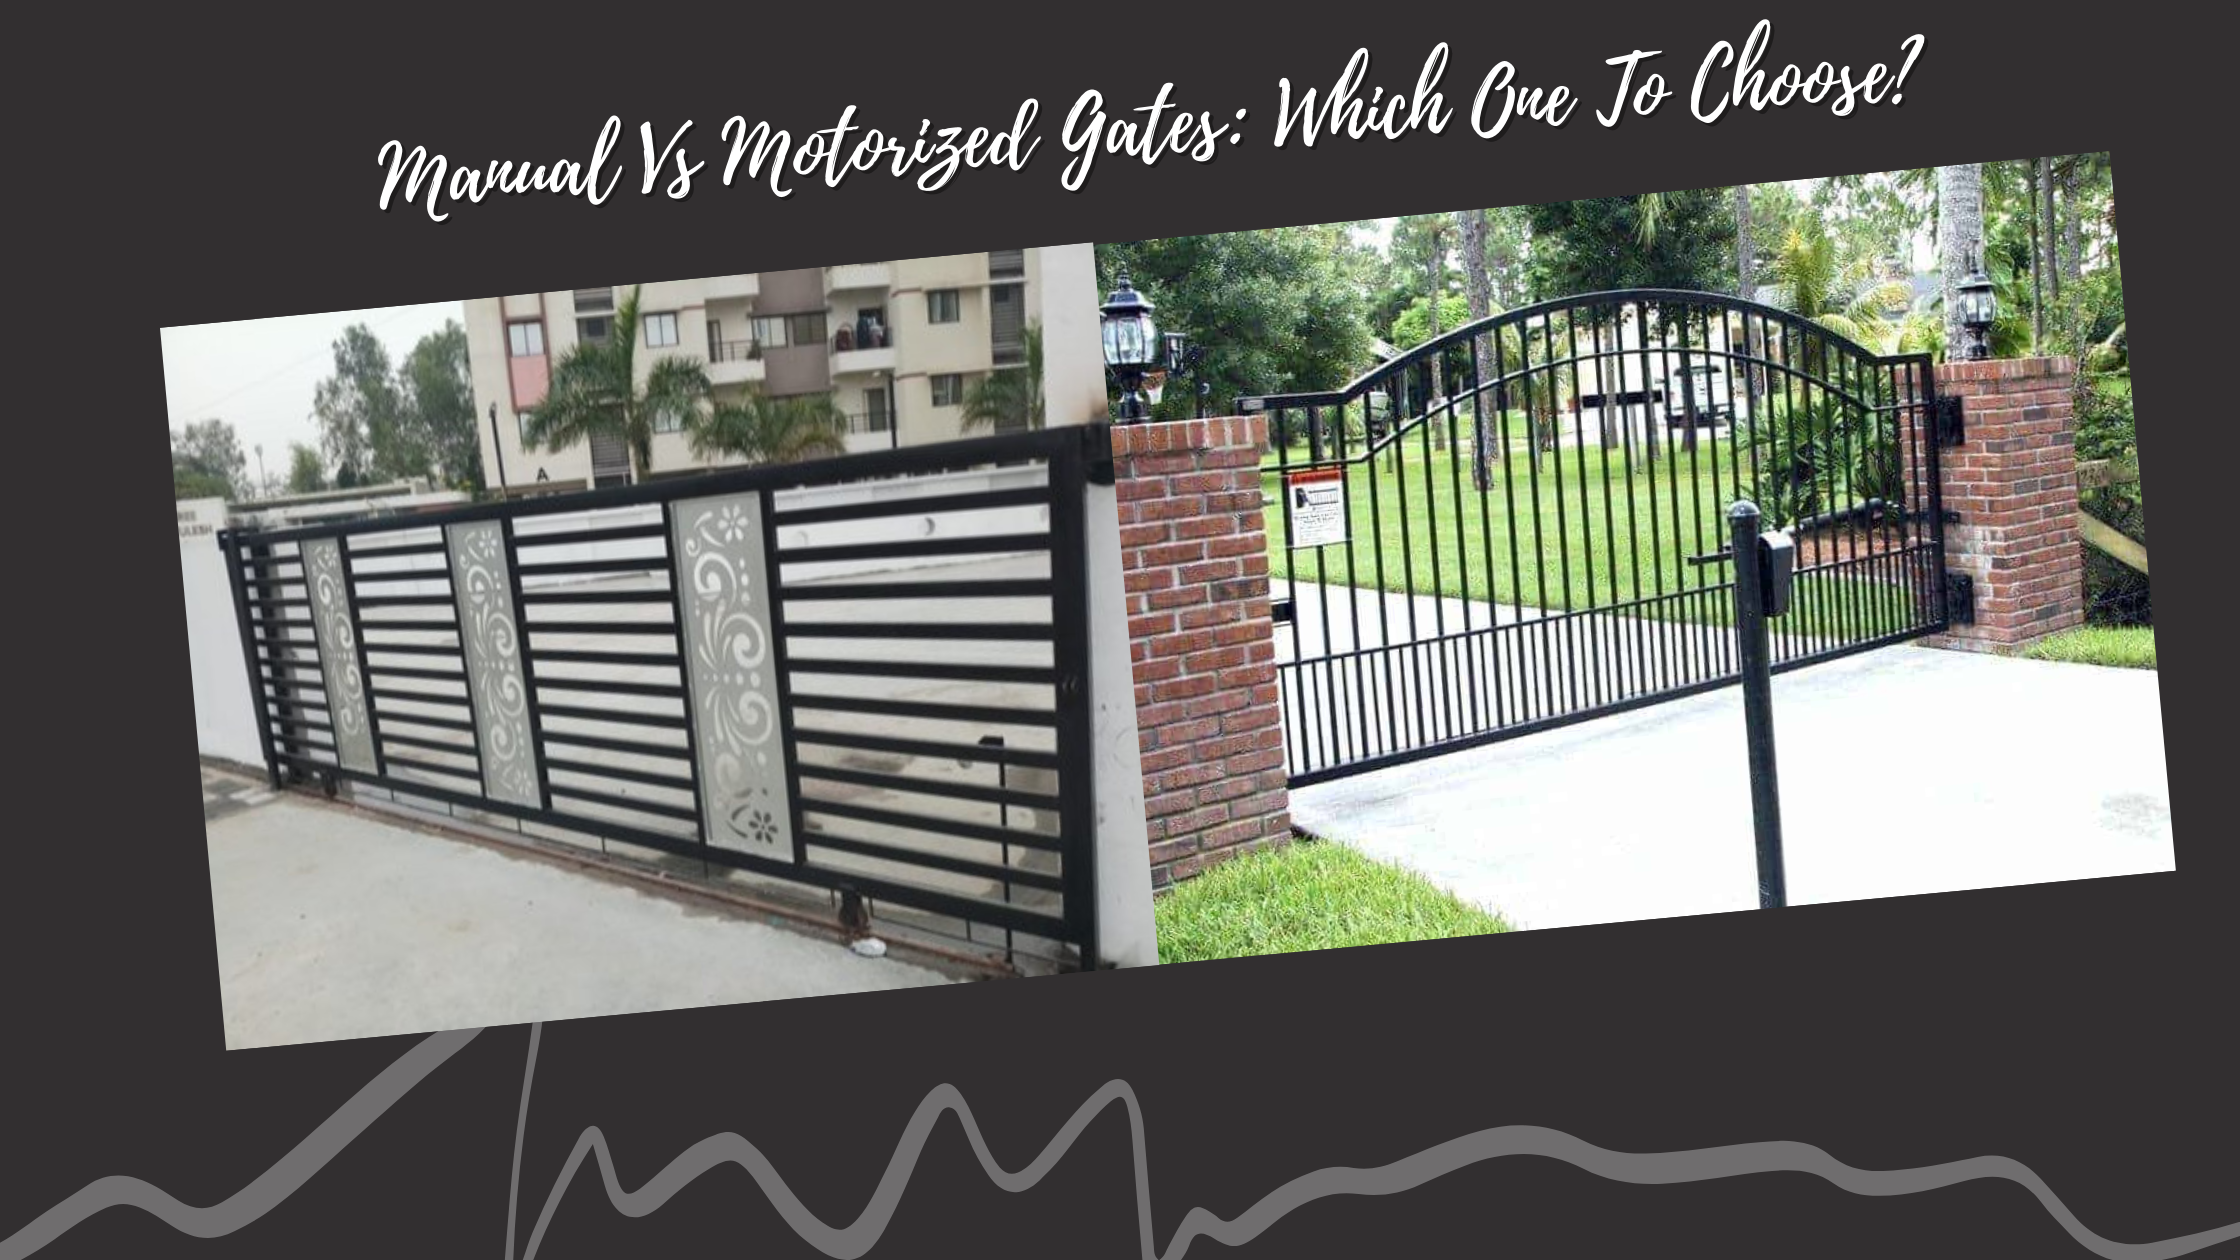 Manual Vs Motorized Gates: Which One To Choose?